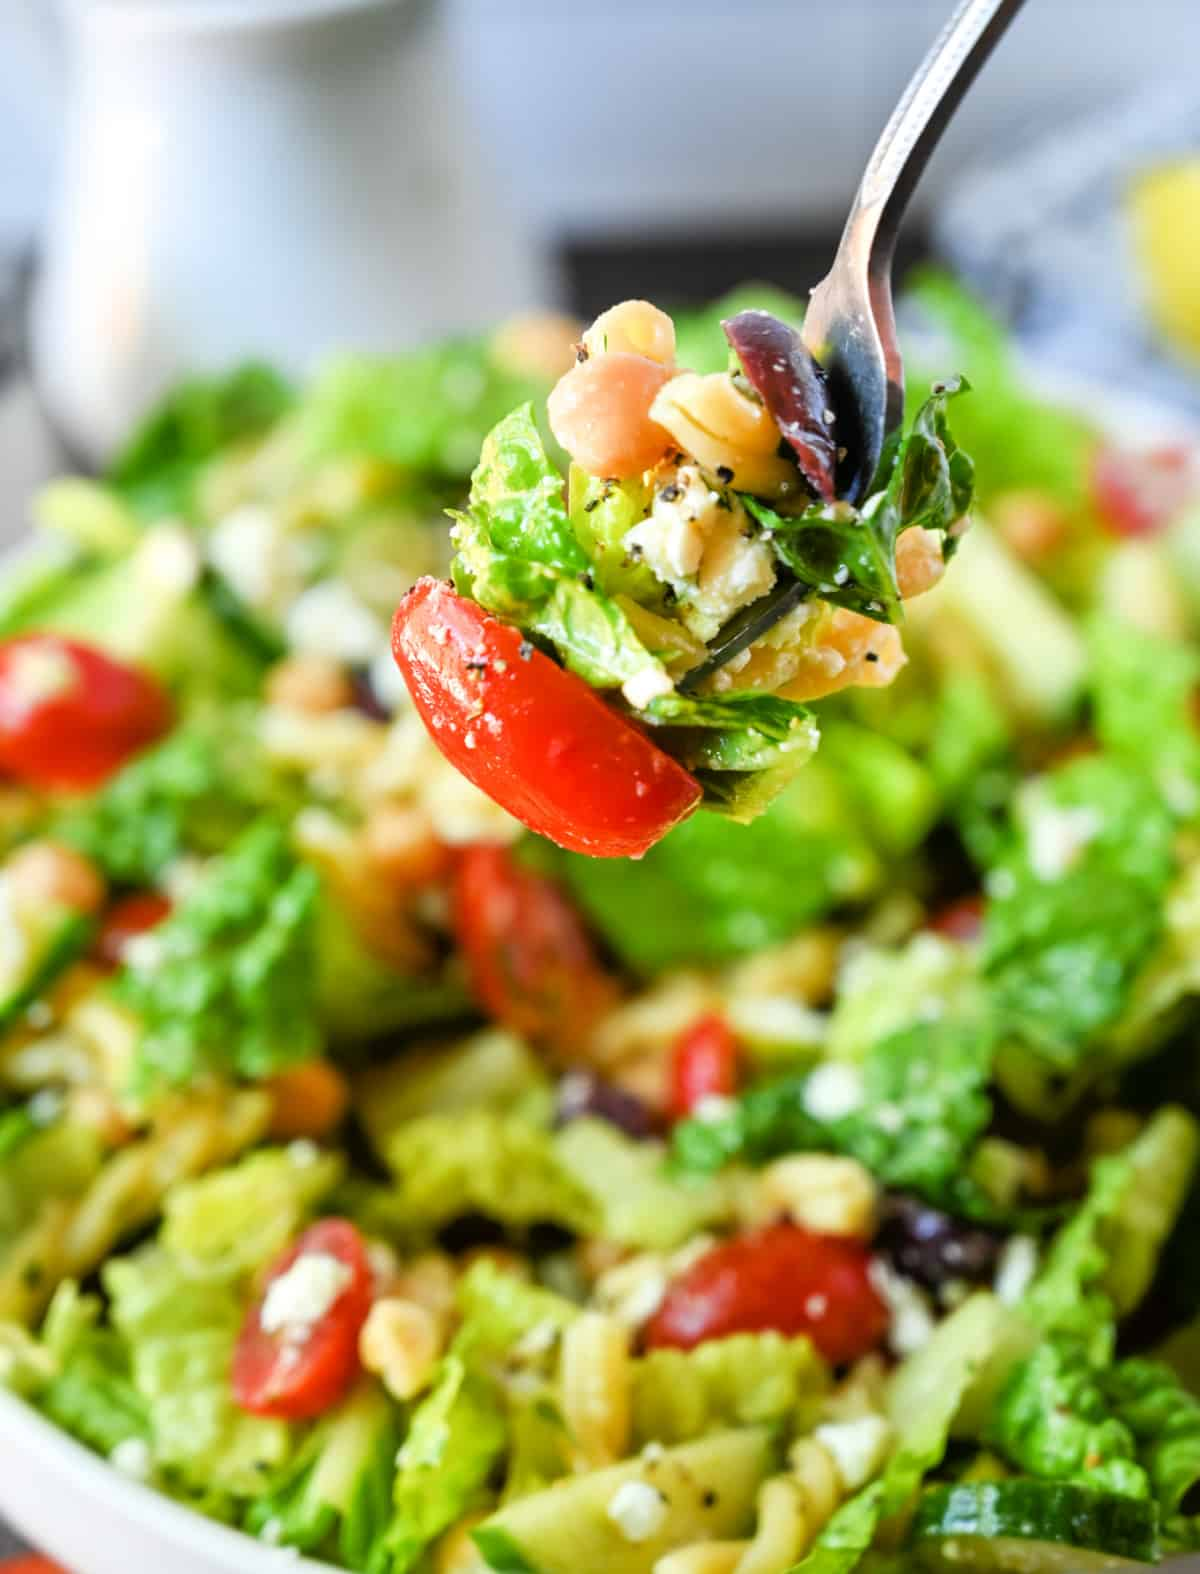 Chopped greek salad bite picked up with a fork.